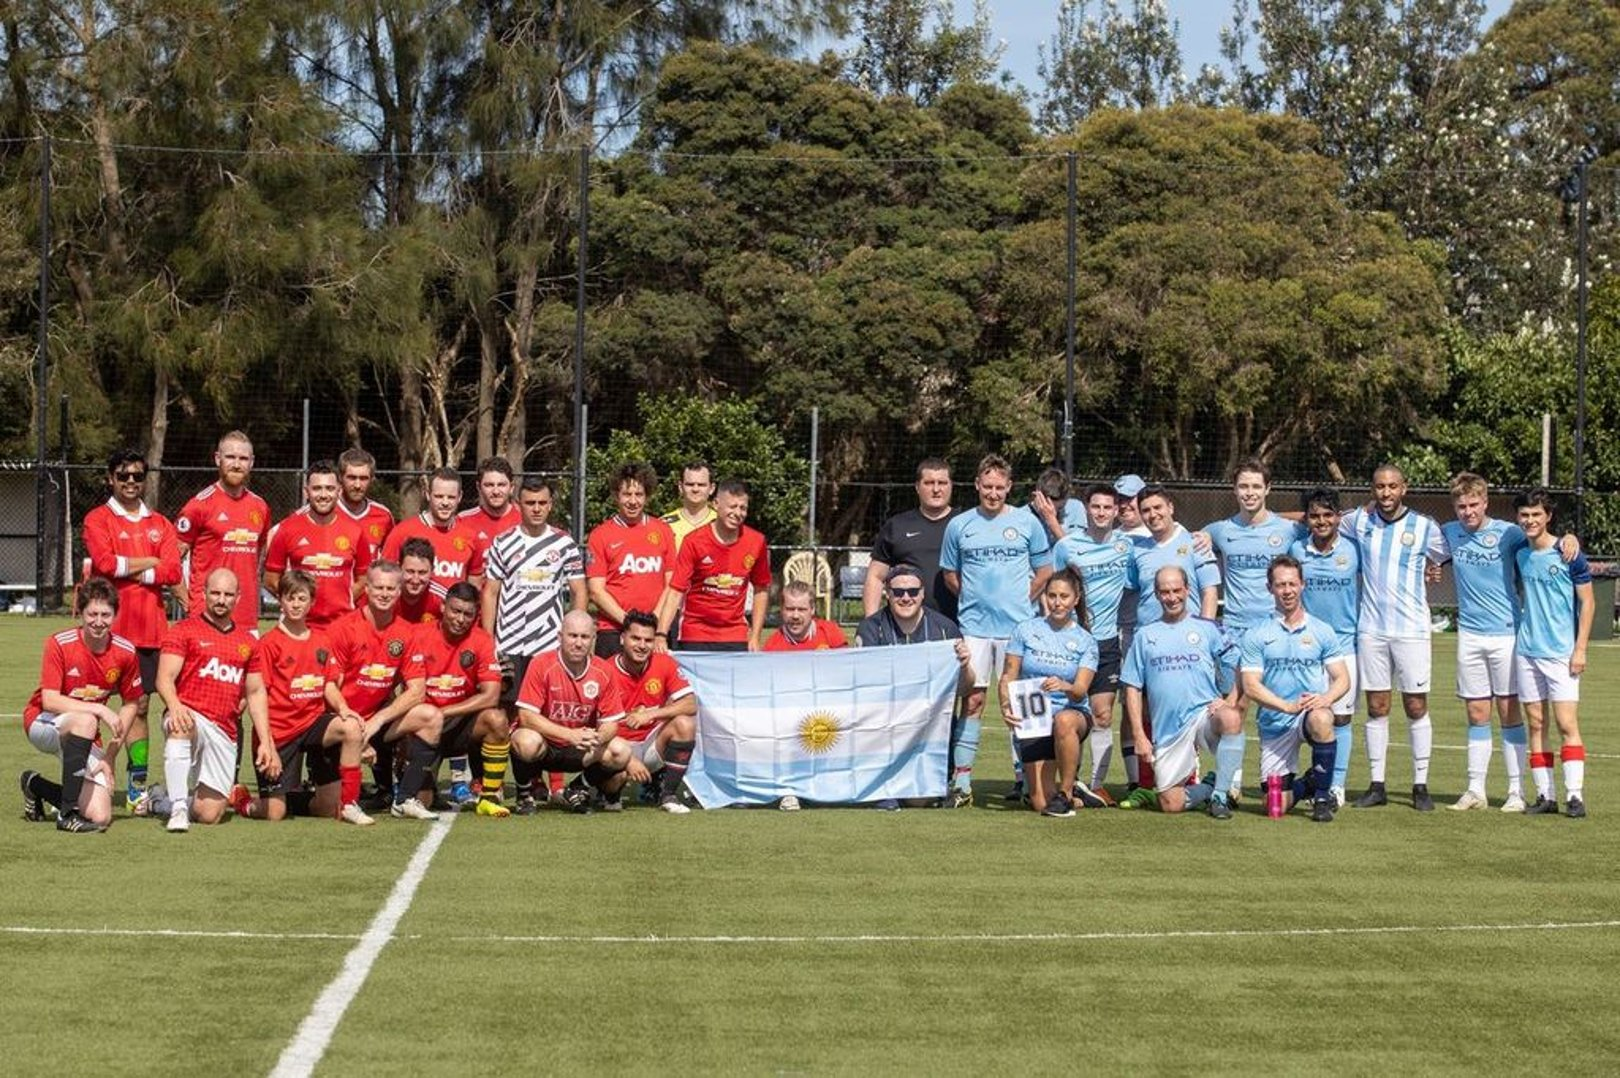 Sydney's City and United OSCs join forces for charity